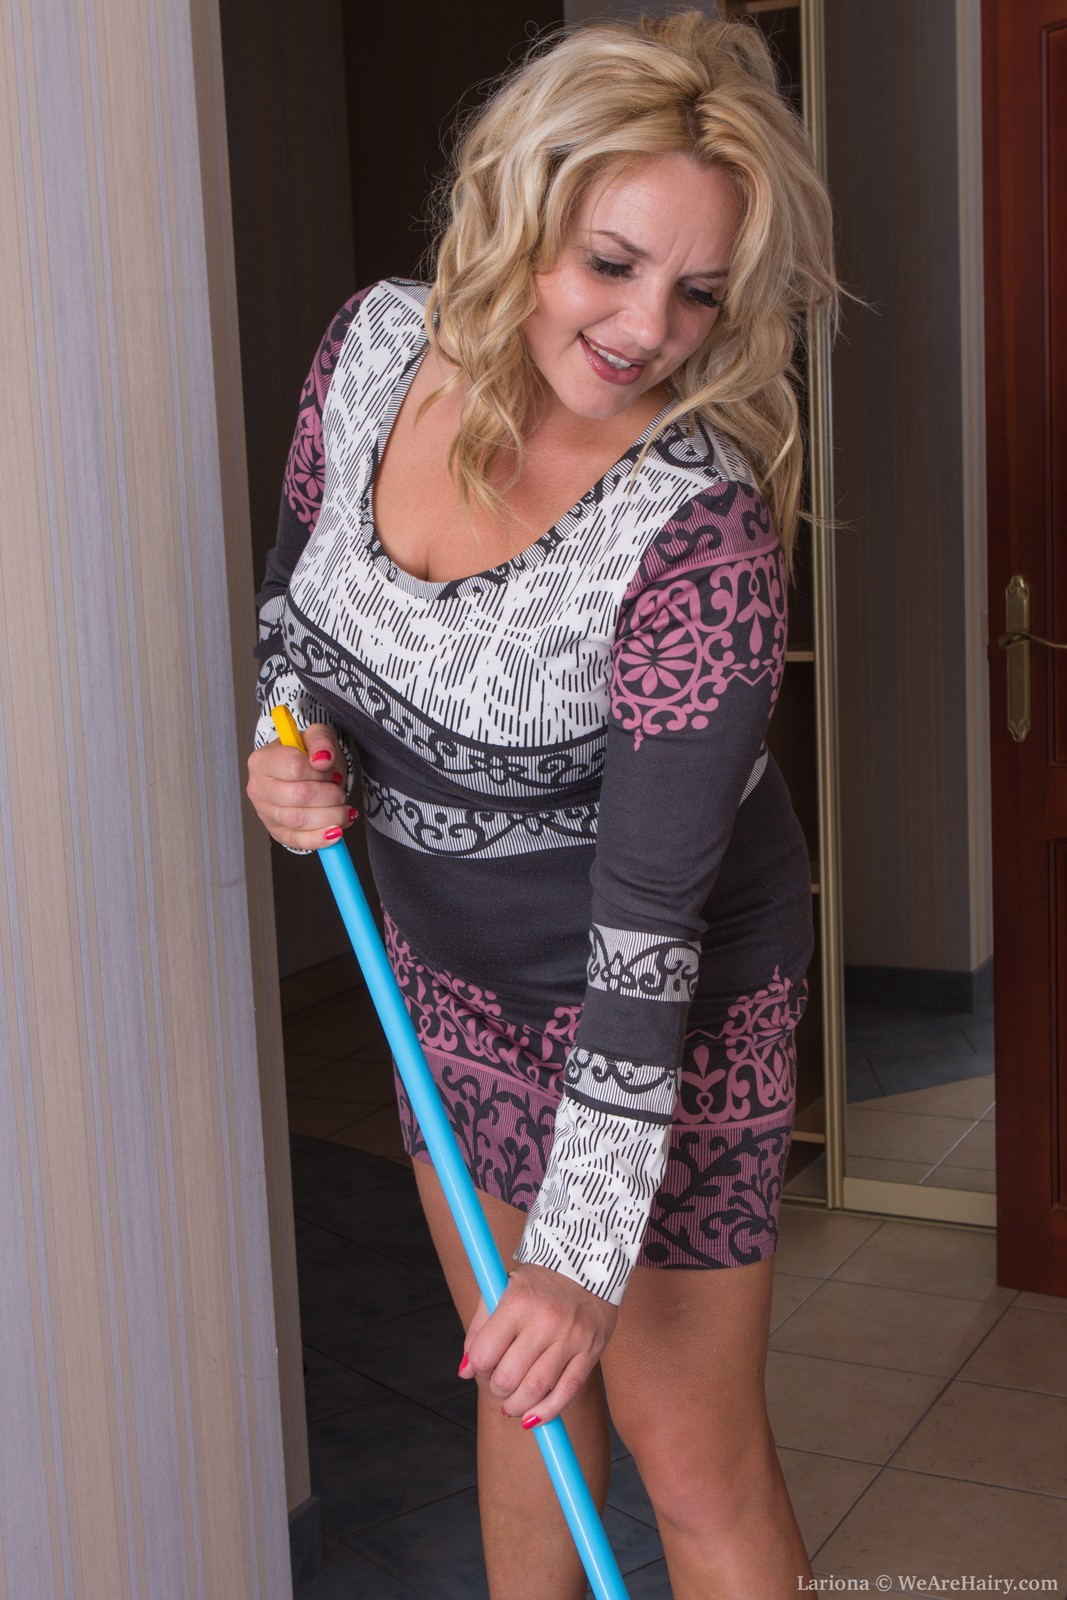 Hot and hairy housewife Lariona cleaning up for us in the nude